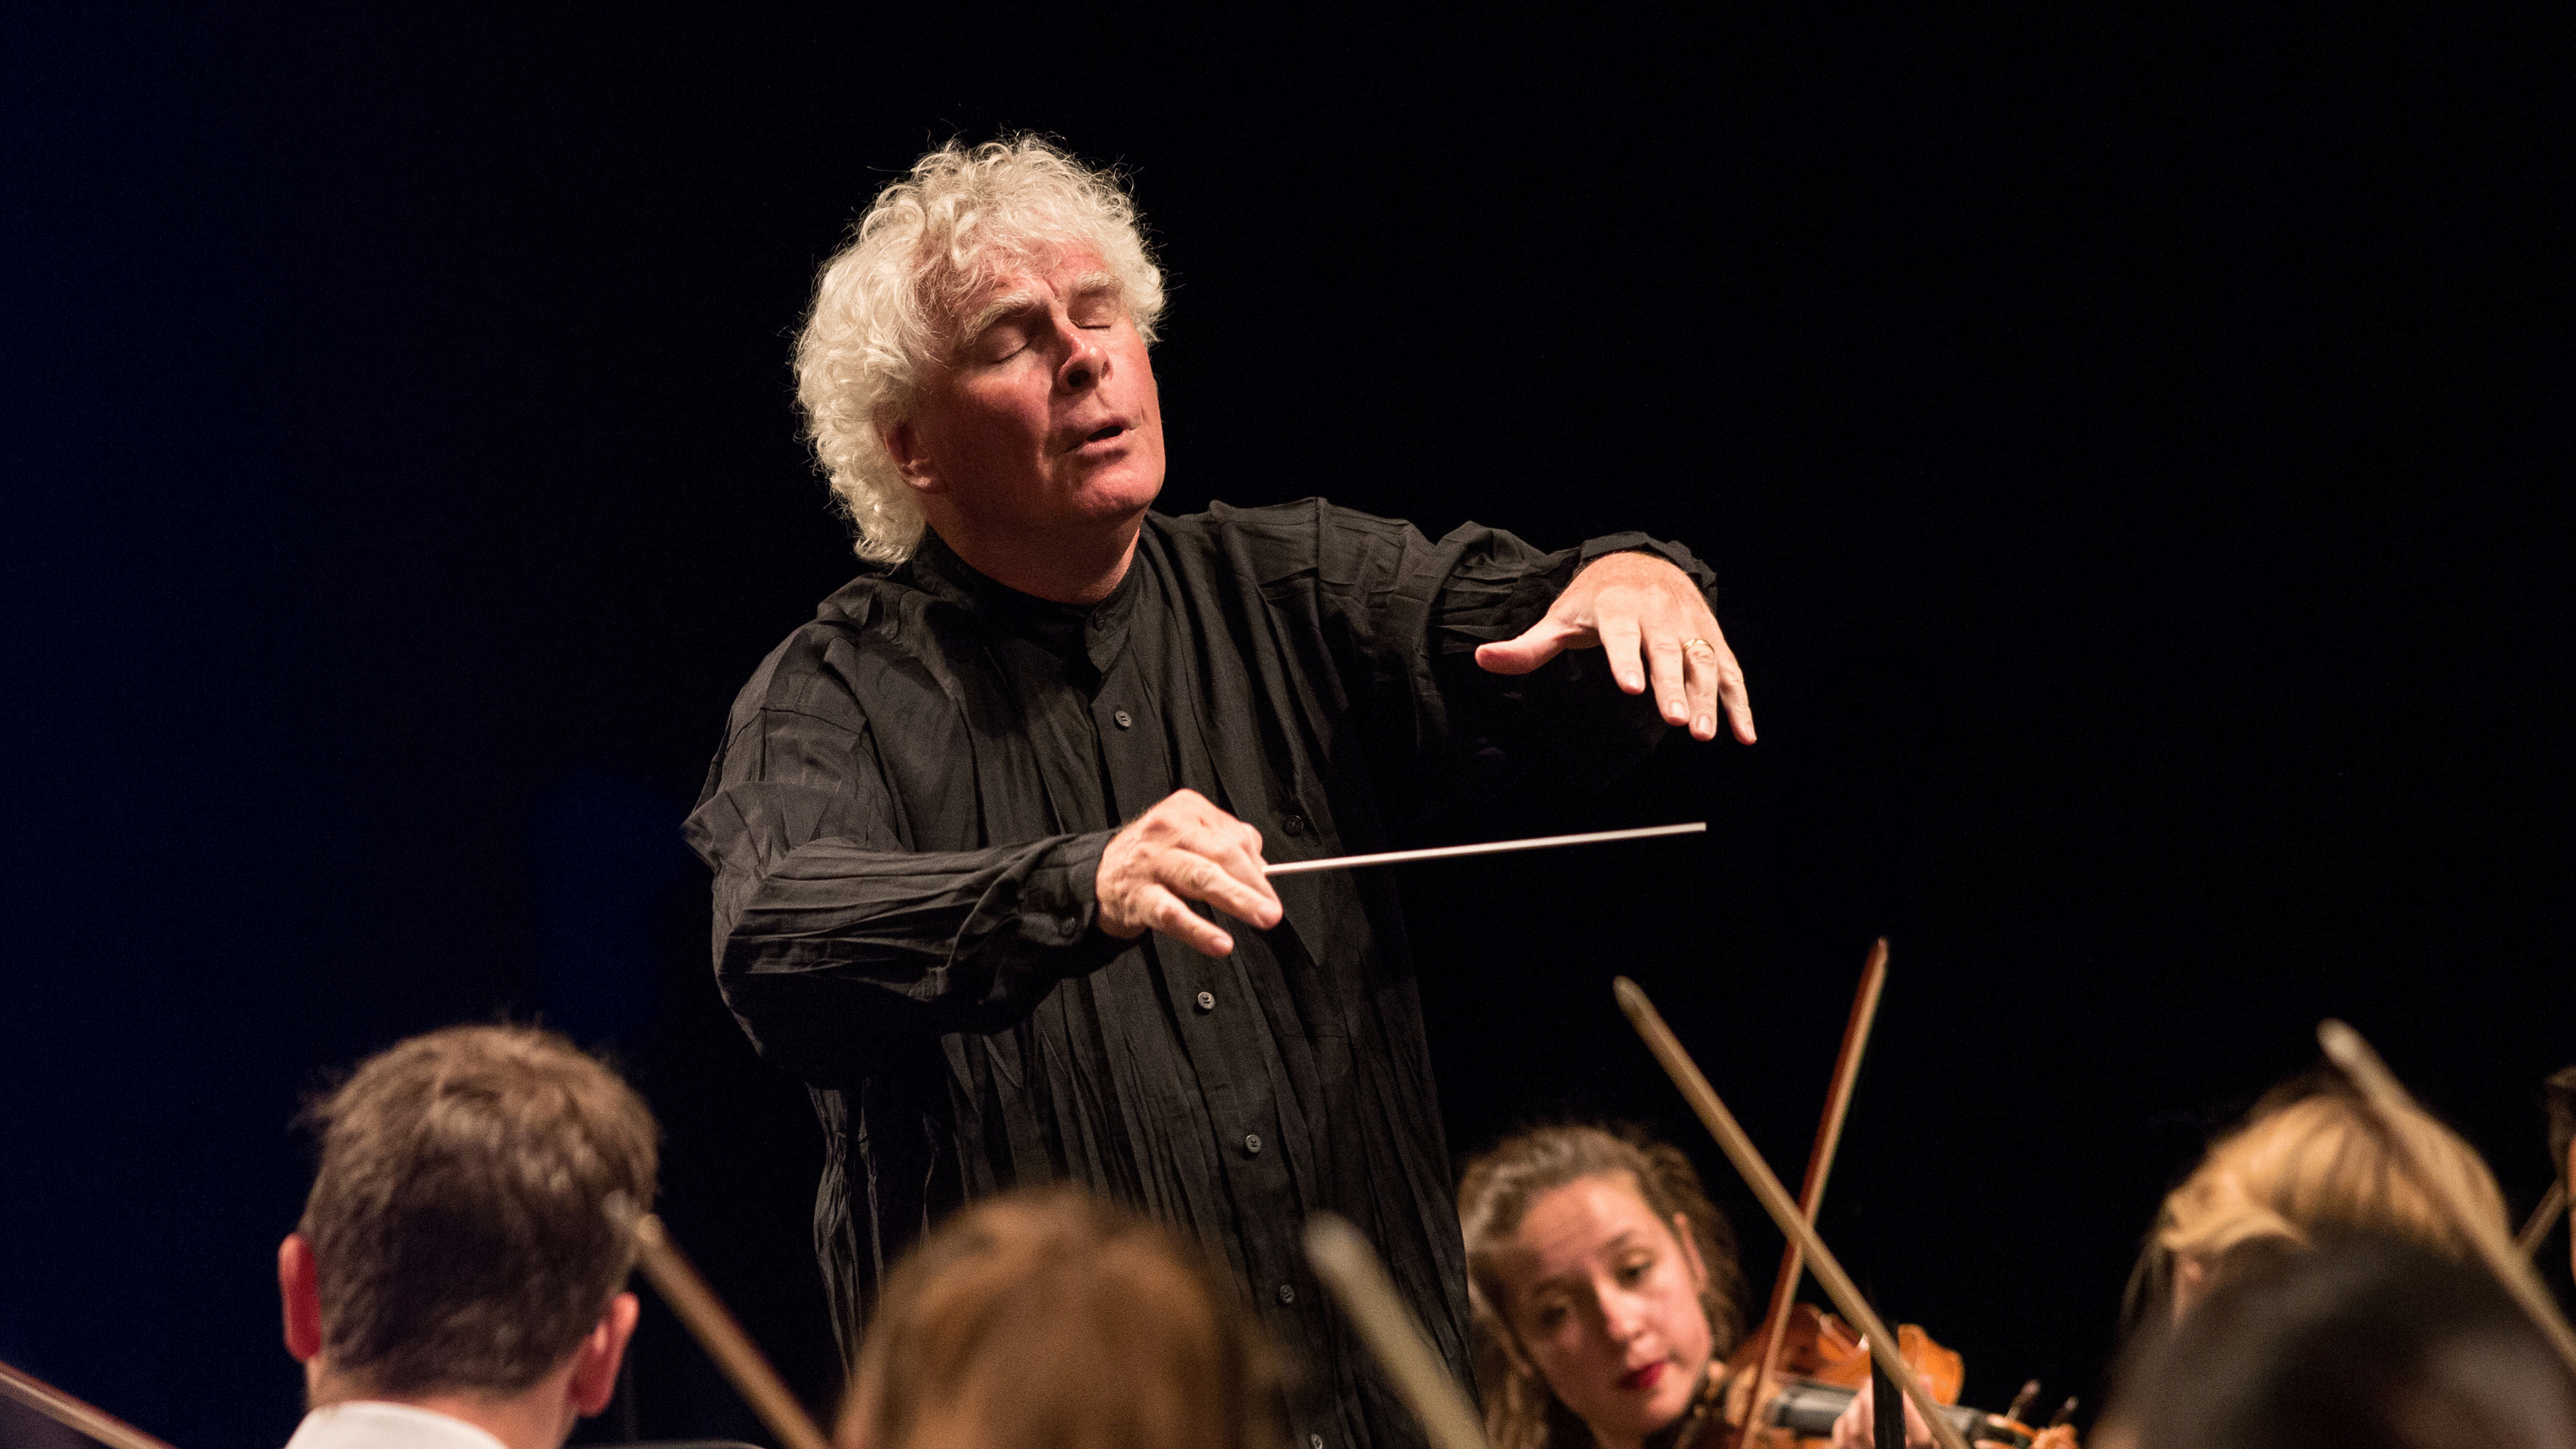 Sir Simon Rattle and sir András Schiff in Beethoven's Symphony No. 5 and Piano Concerto No. 1